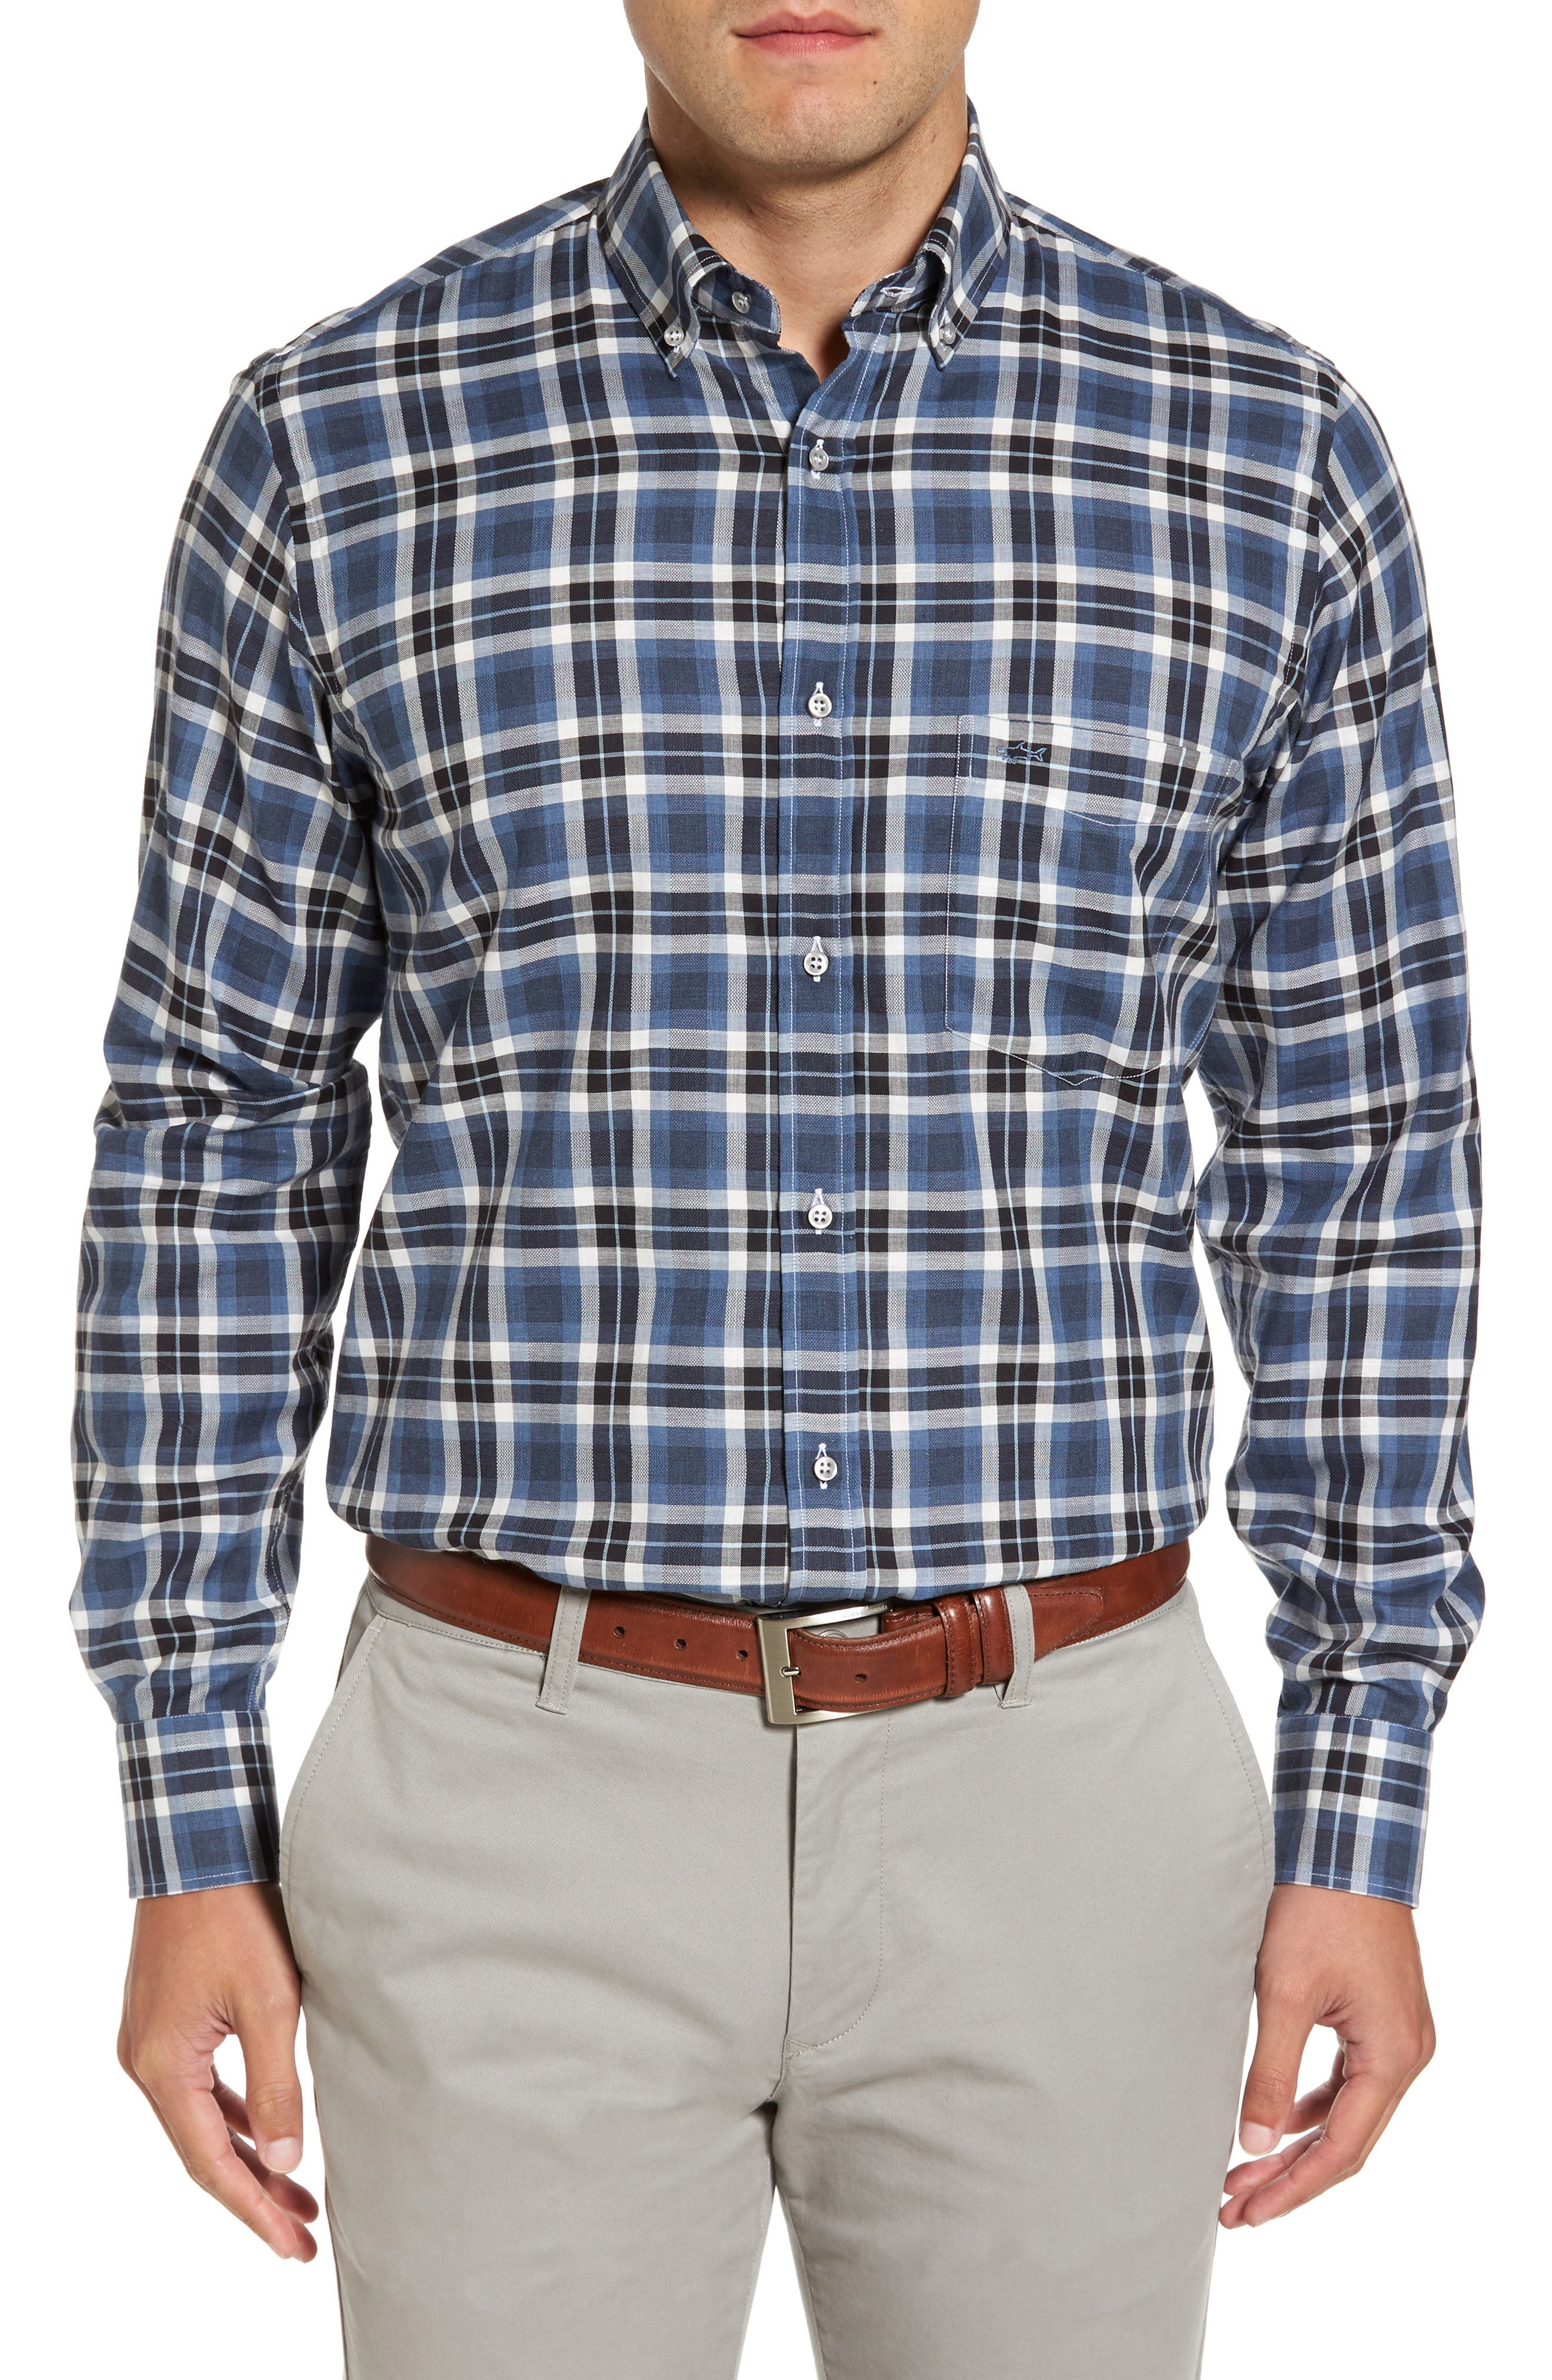 Paul&Shark Silver Collection Plaid Sport Shirt,                             Main thumbnail 1, color,                             400